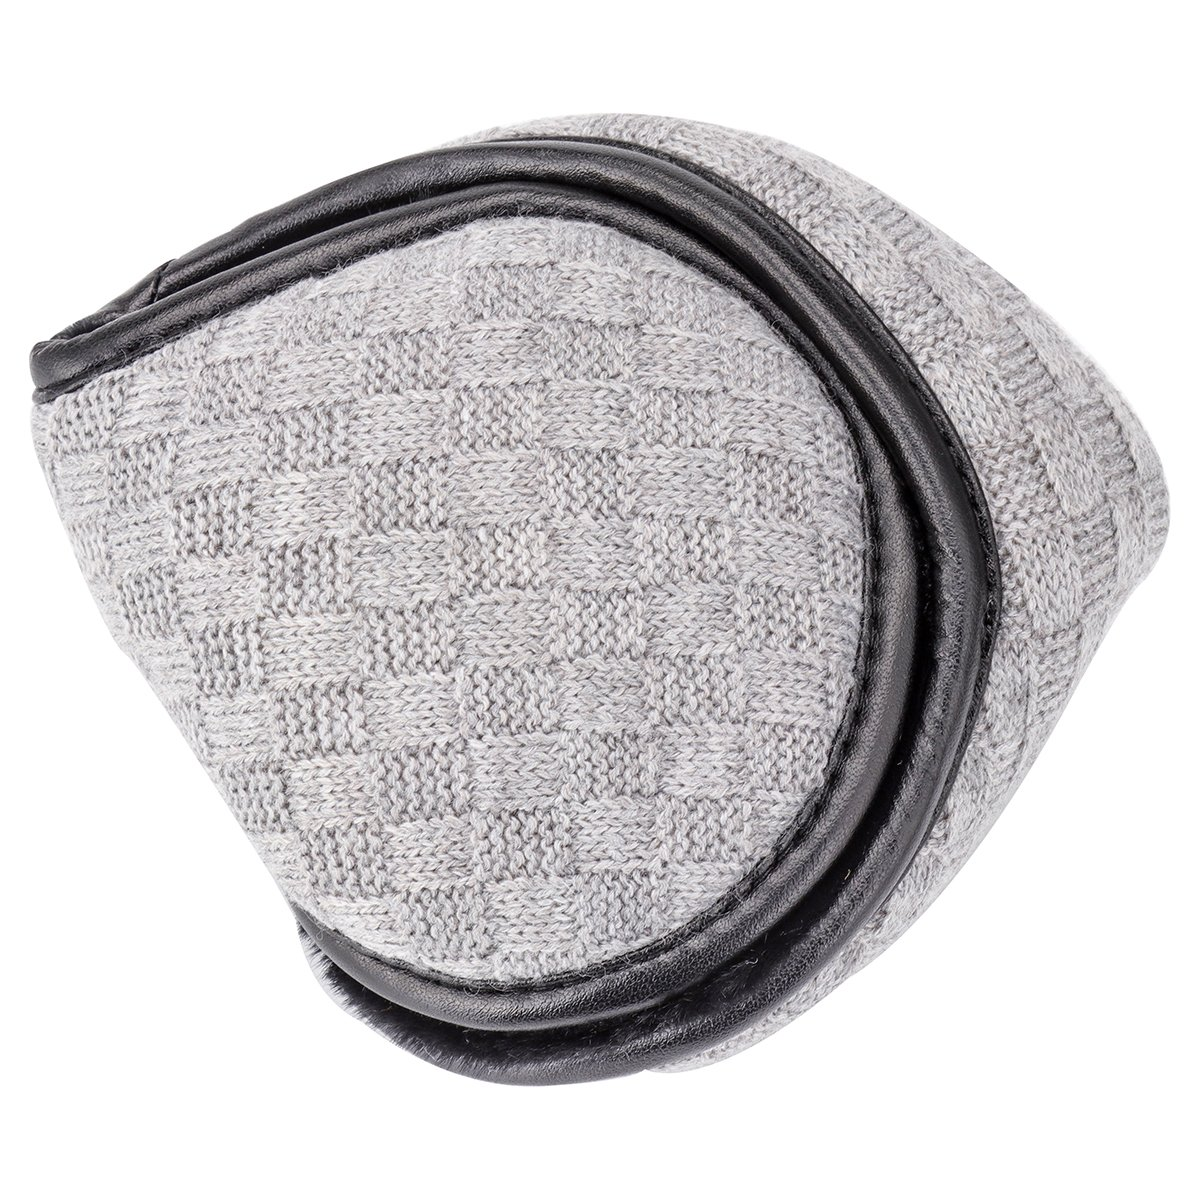 Ear Winter Warmers, Unisex Knit Foldable Big Furry Ear Muffs Winter Outdoor EarMuffs, Gray